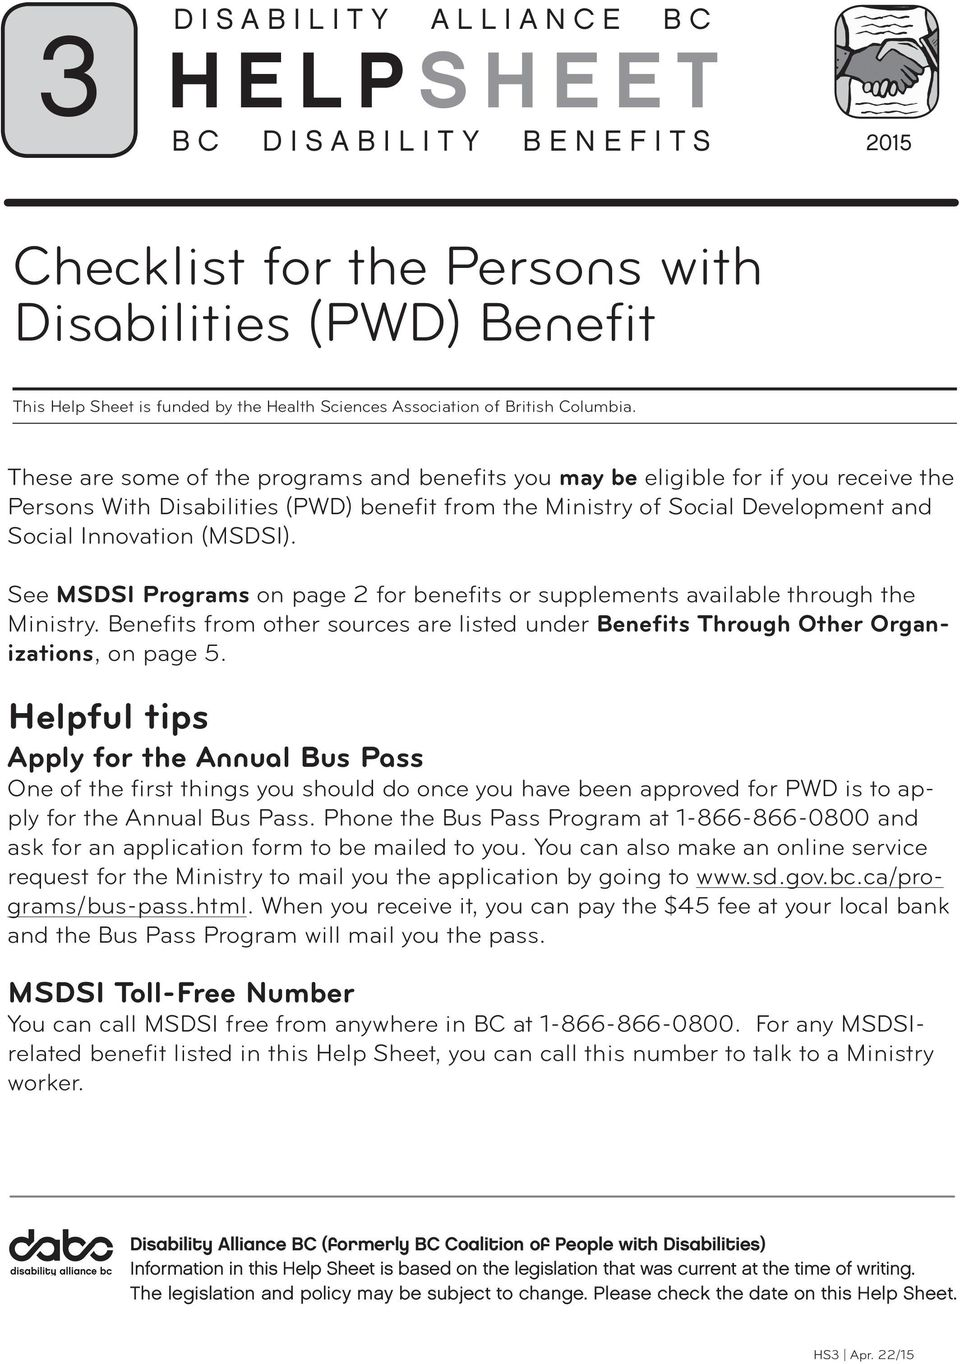 These are some of the programs and benefits you may be eligible for if you receive the Persons With Disabilities (PWD) benefit from the Ministry of Social Development and Social Innovation (MSDSI).